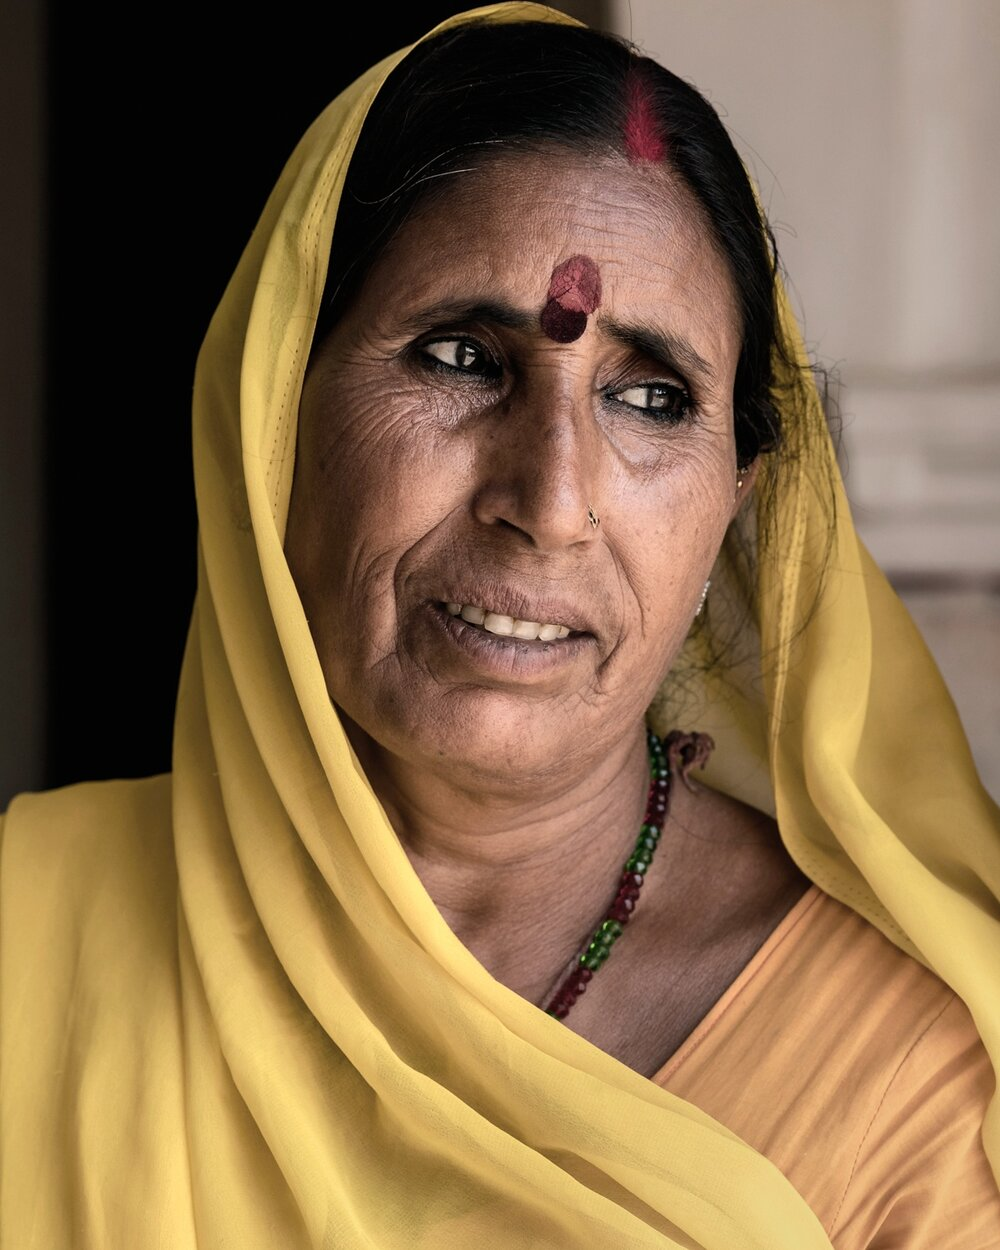 A woman wearing a traditional Saree in Amer Fort.